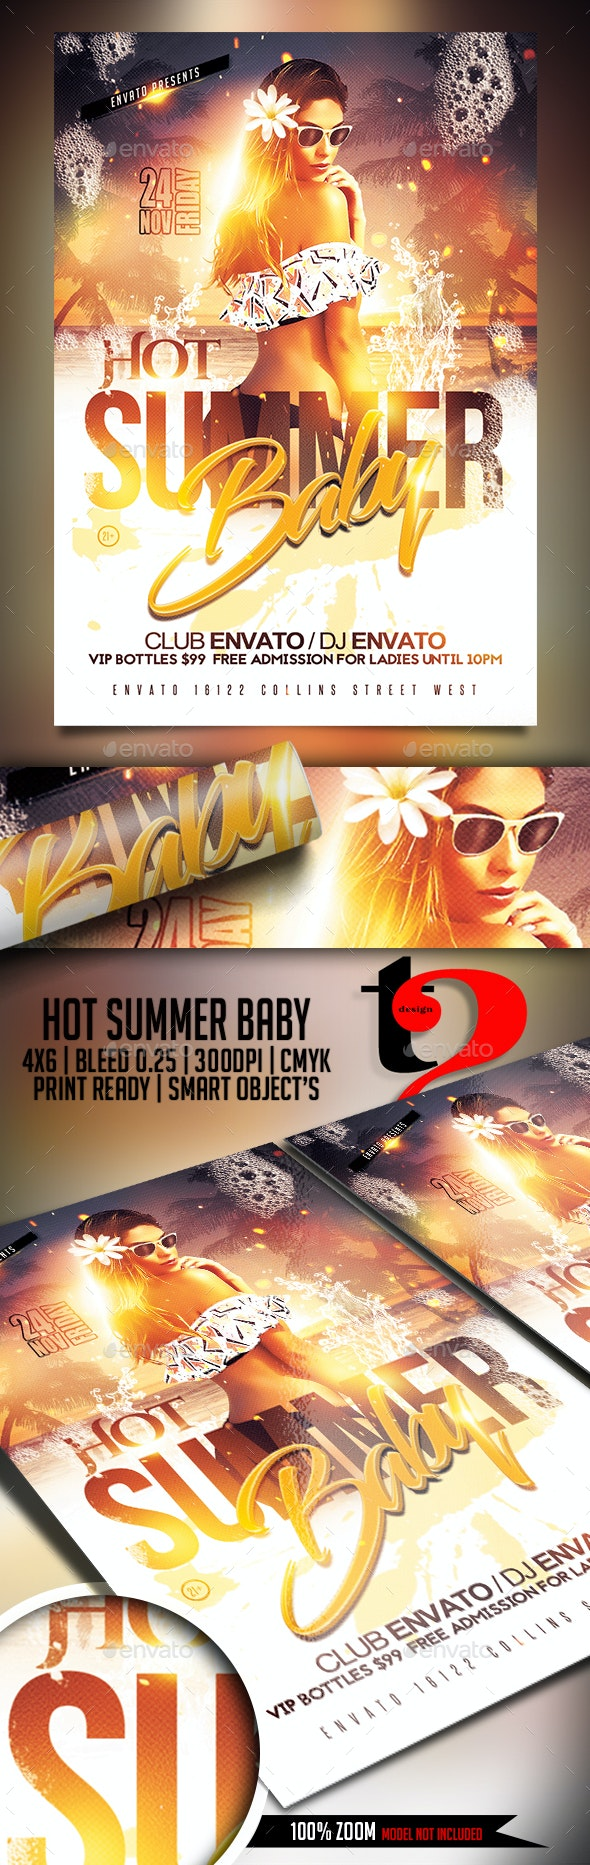 Hot Summer Baby Flyer Template - Clubs & Parties Events